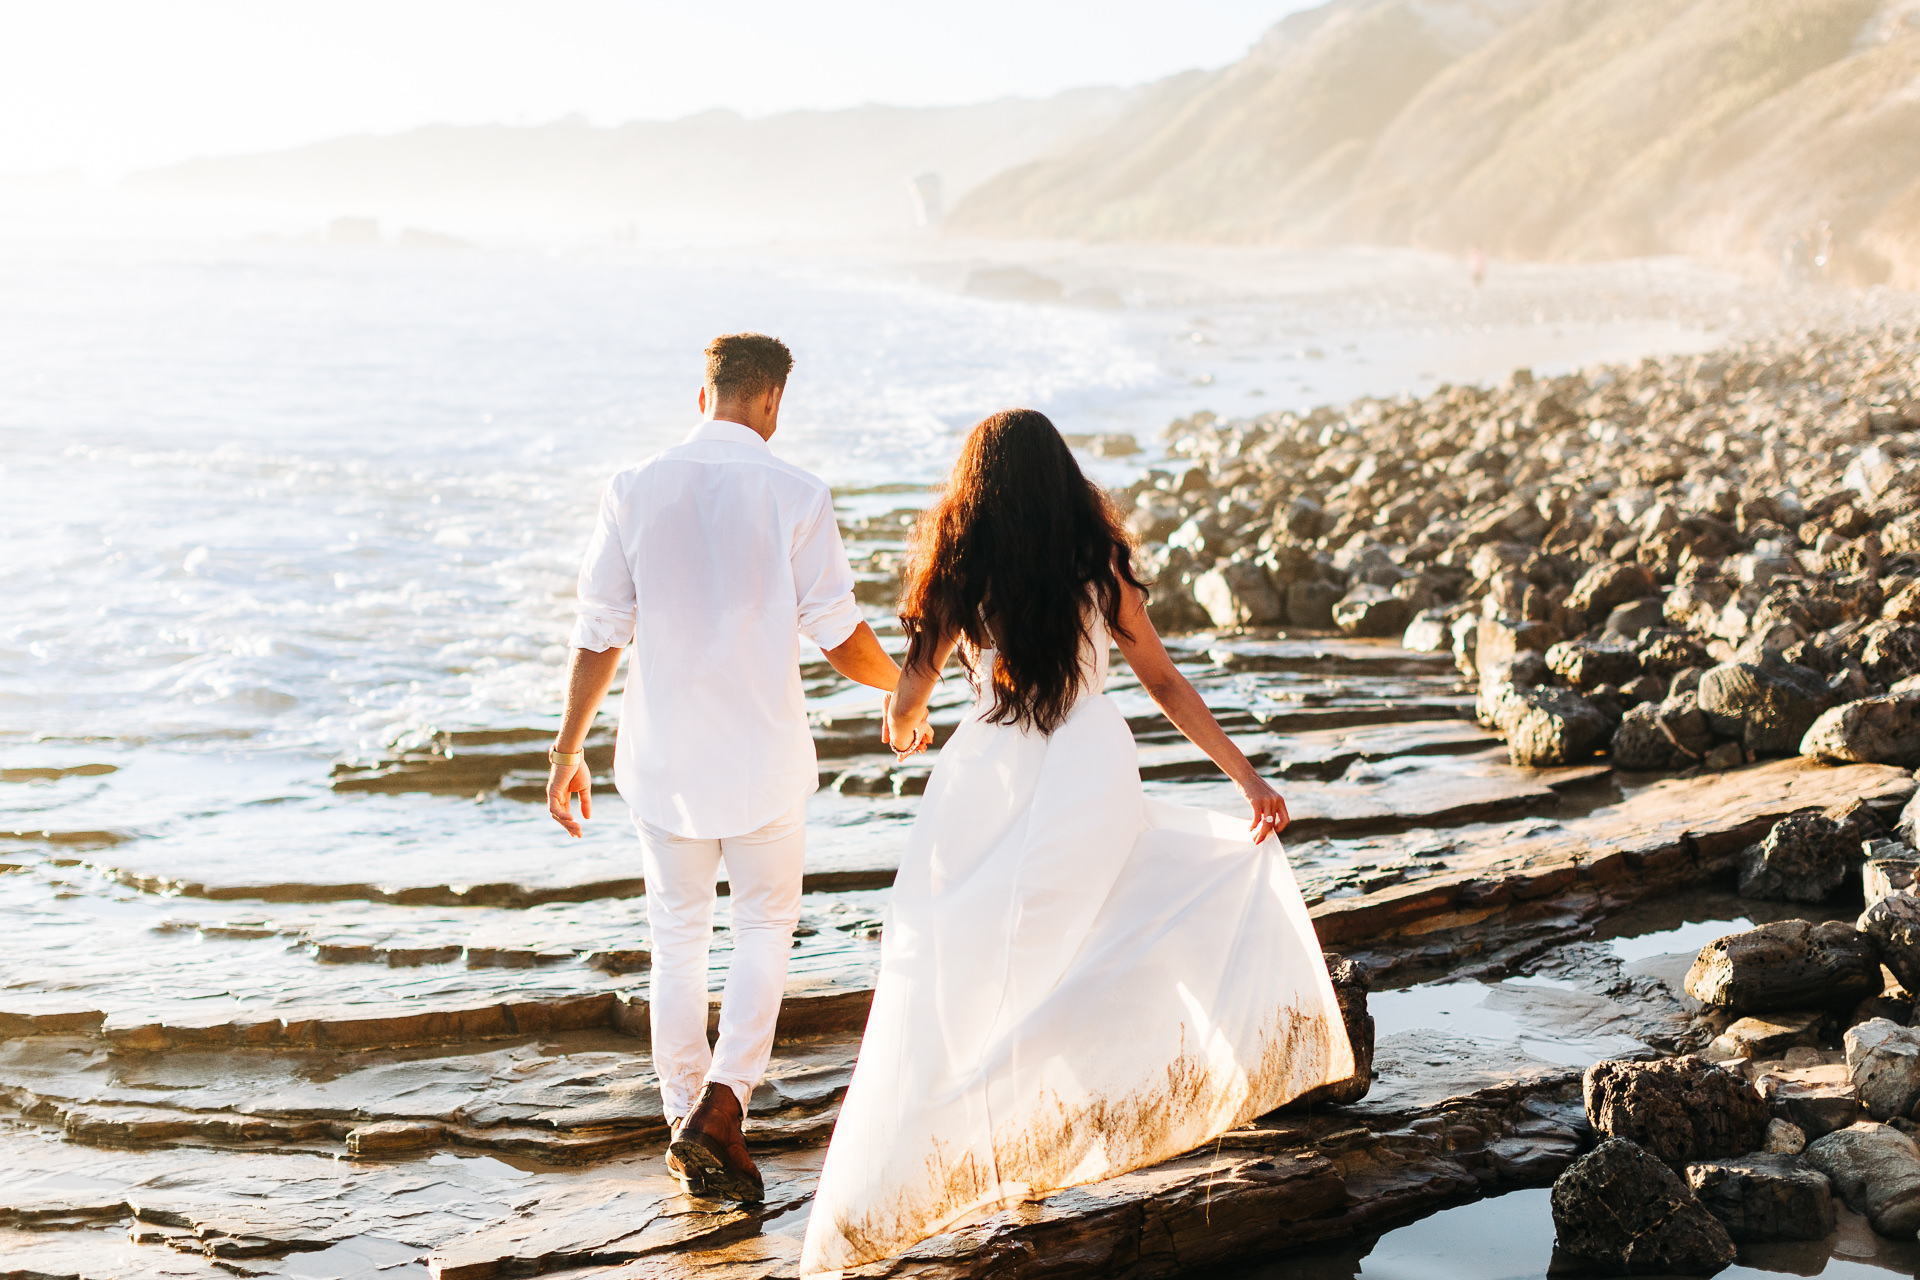 Nanis&Jay-Crystal-Cove-Beach-Engagement-Session-Clarisse-Rae-Photo-&-Video-Orange-County-Wedding-Photographer-&-Videographer_35